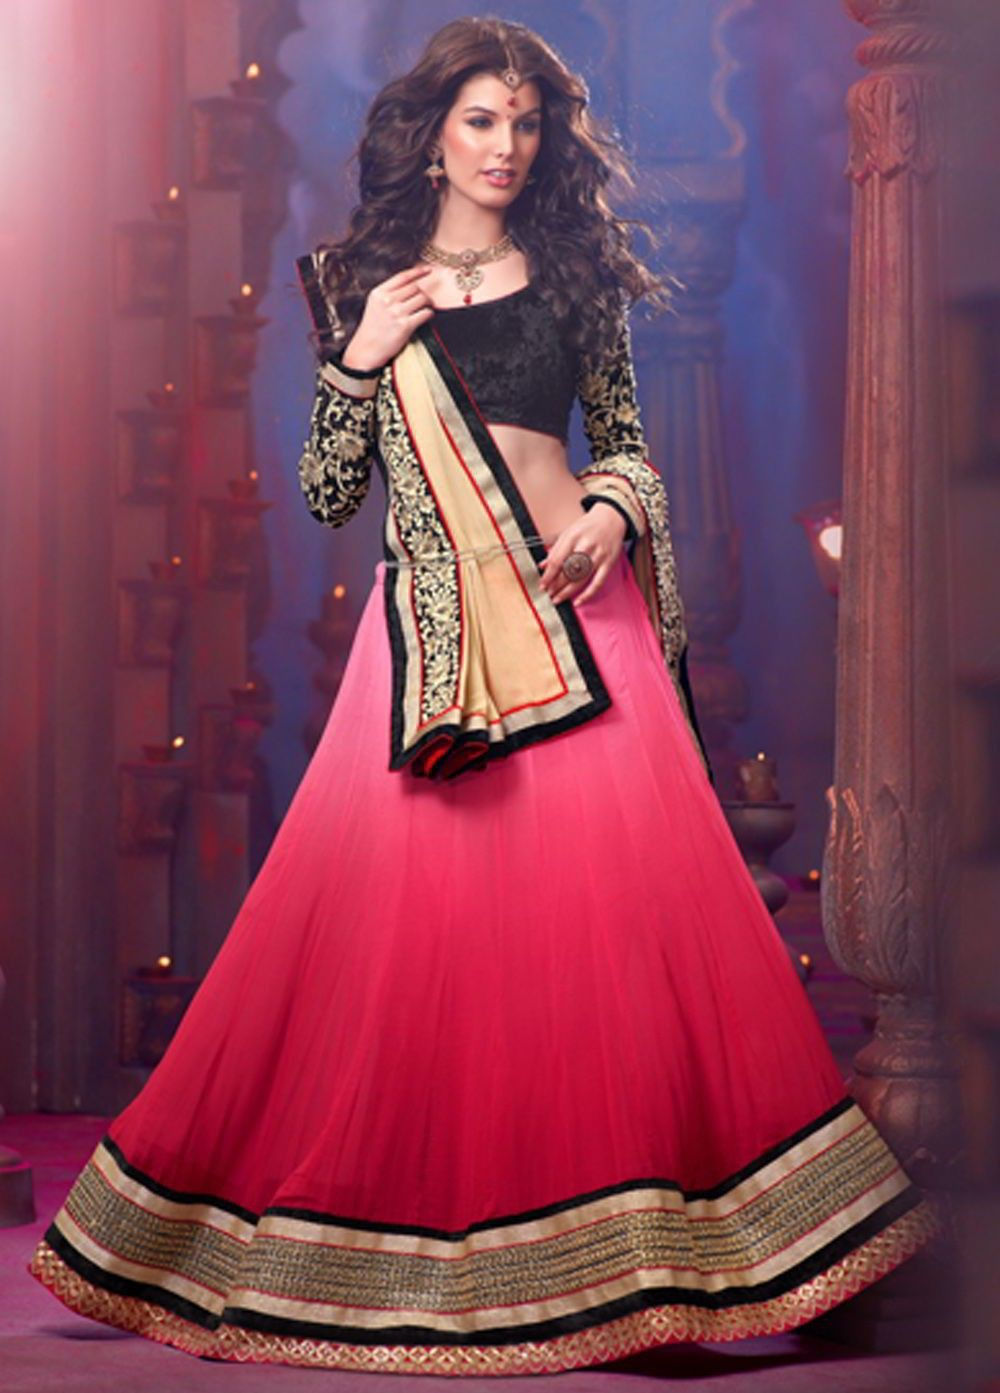 Georgette dupatta draped across one shoulder, paired with a ghaghara.. Read more http://fashionpro.me/choosing-dupatta-complement-outfit